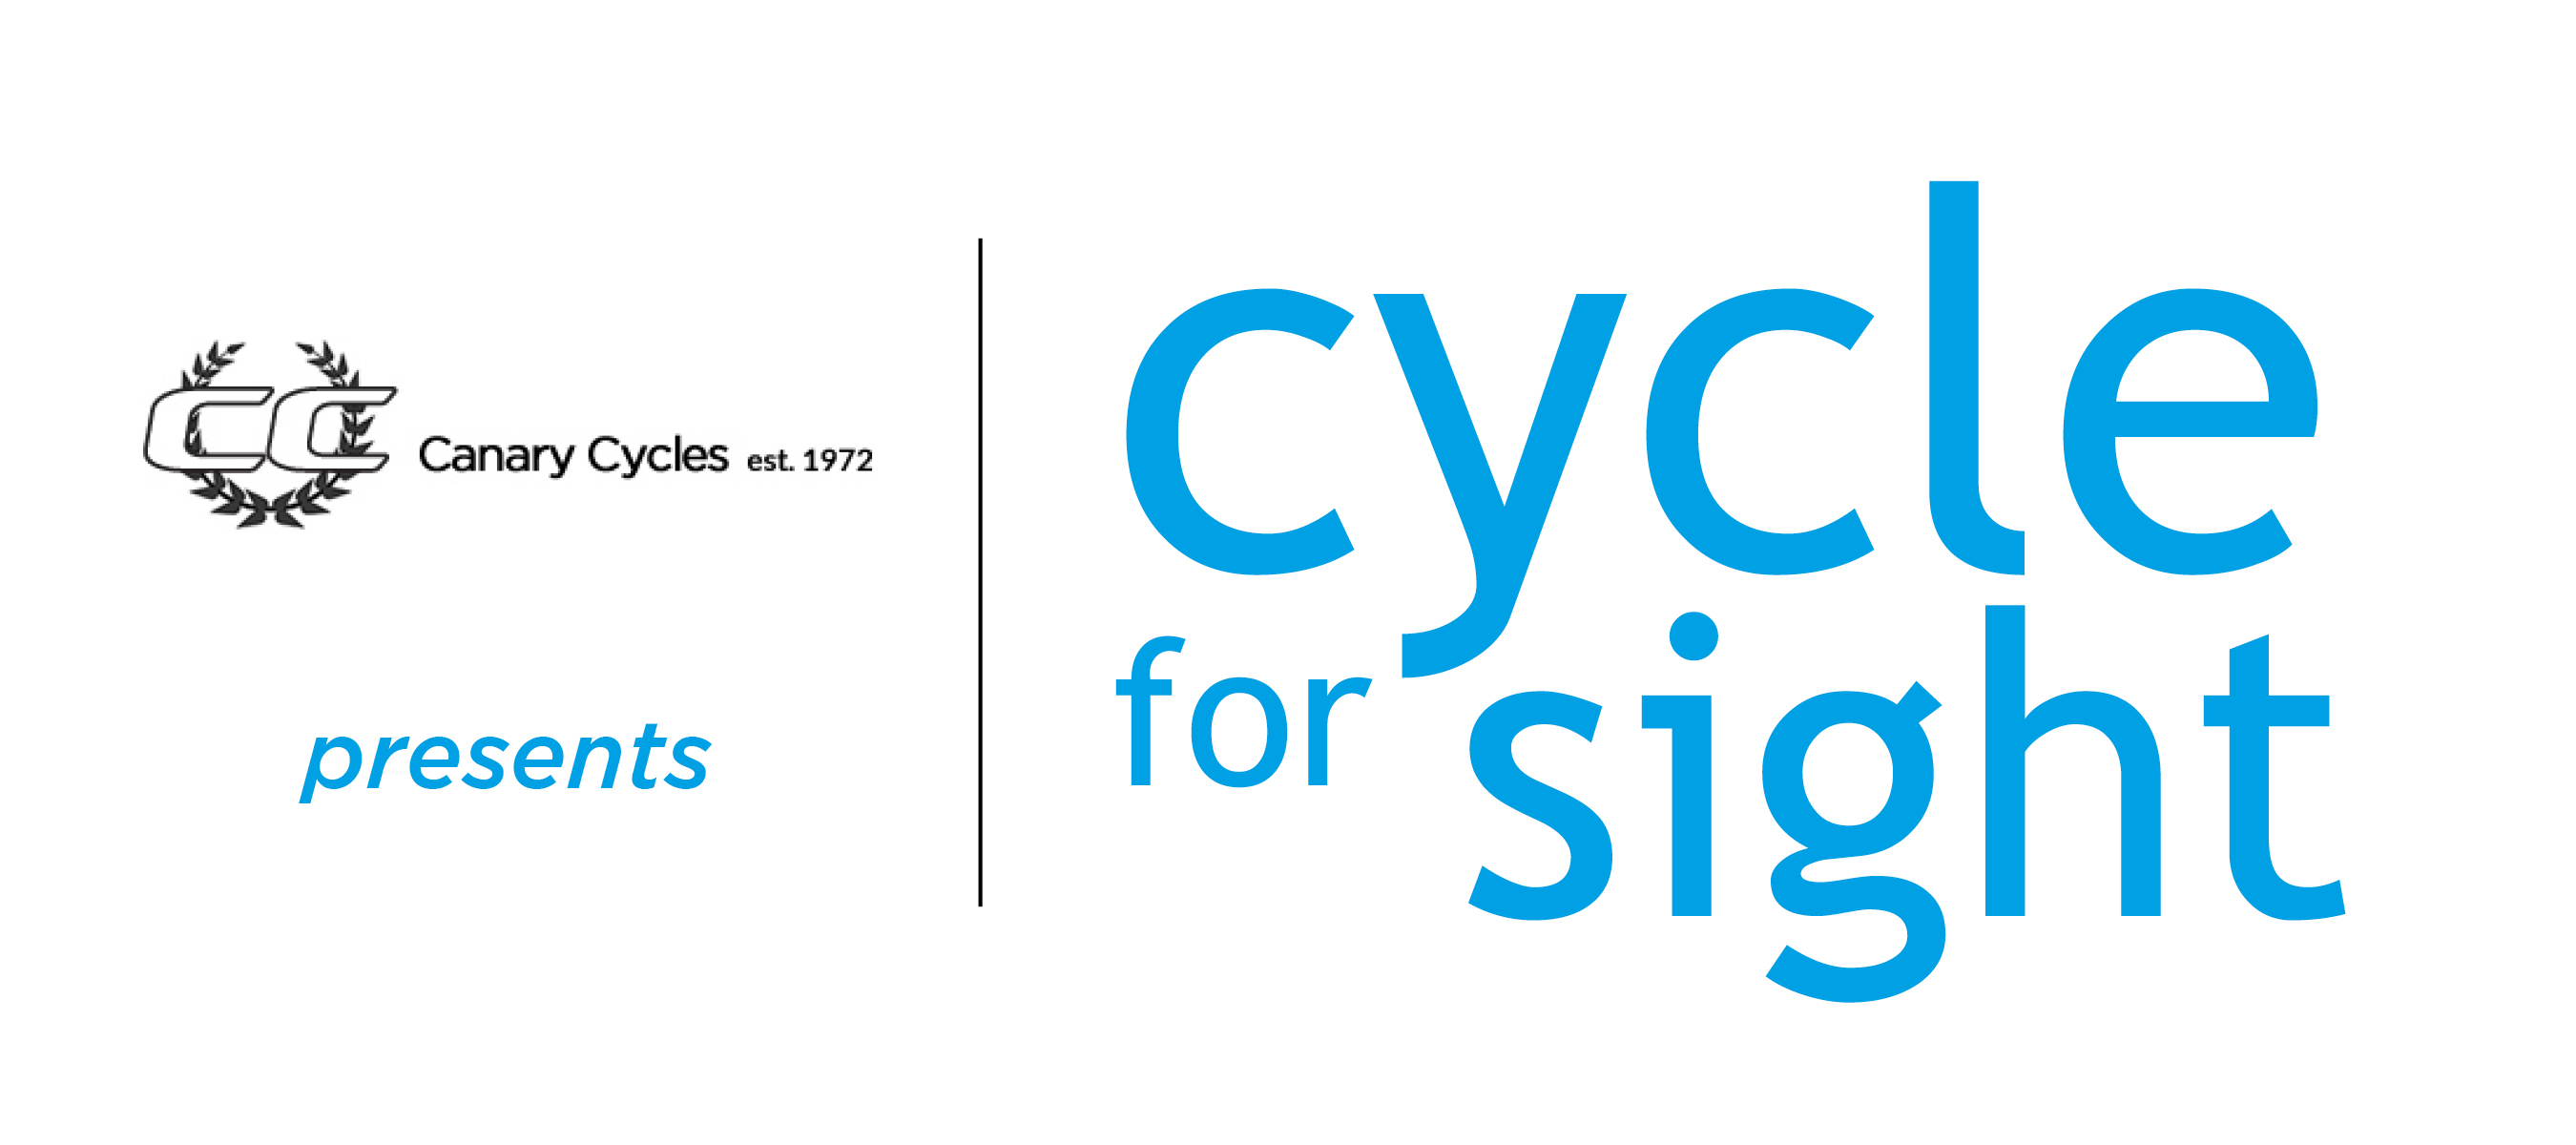 Canary Cycles presents Cycle for Sight